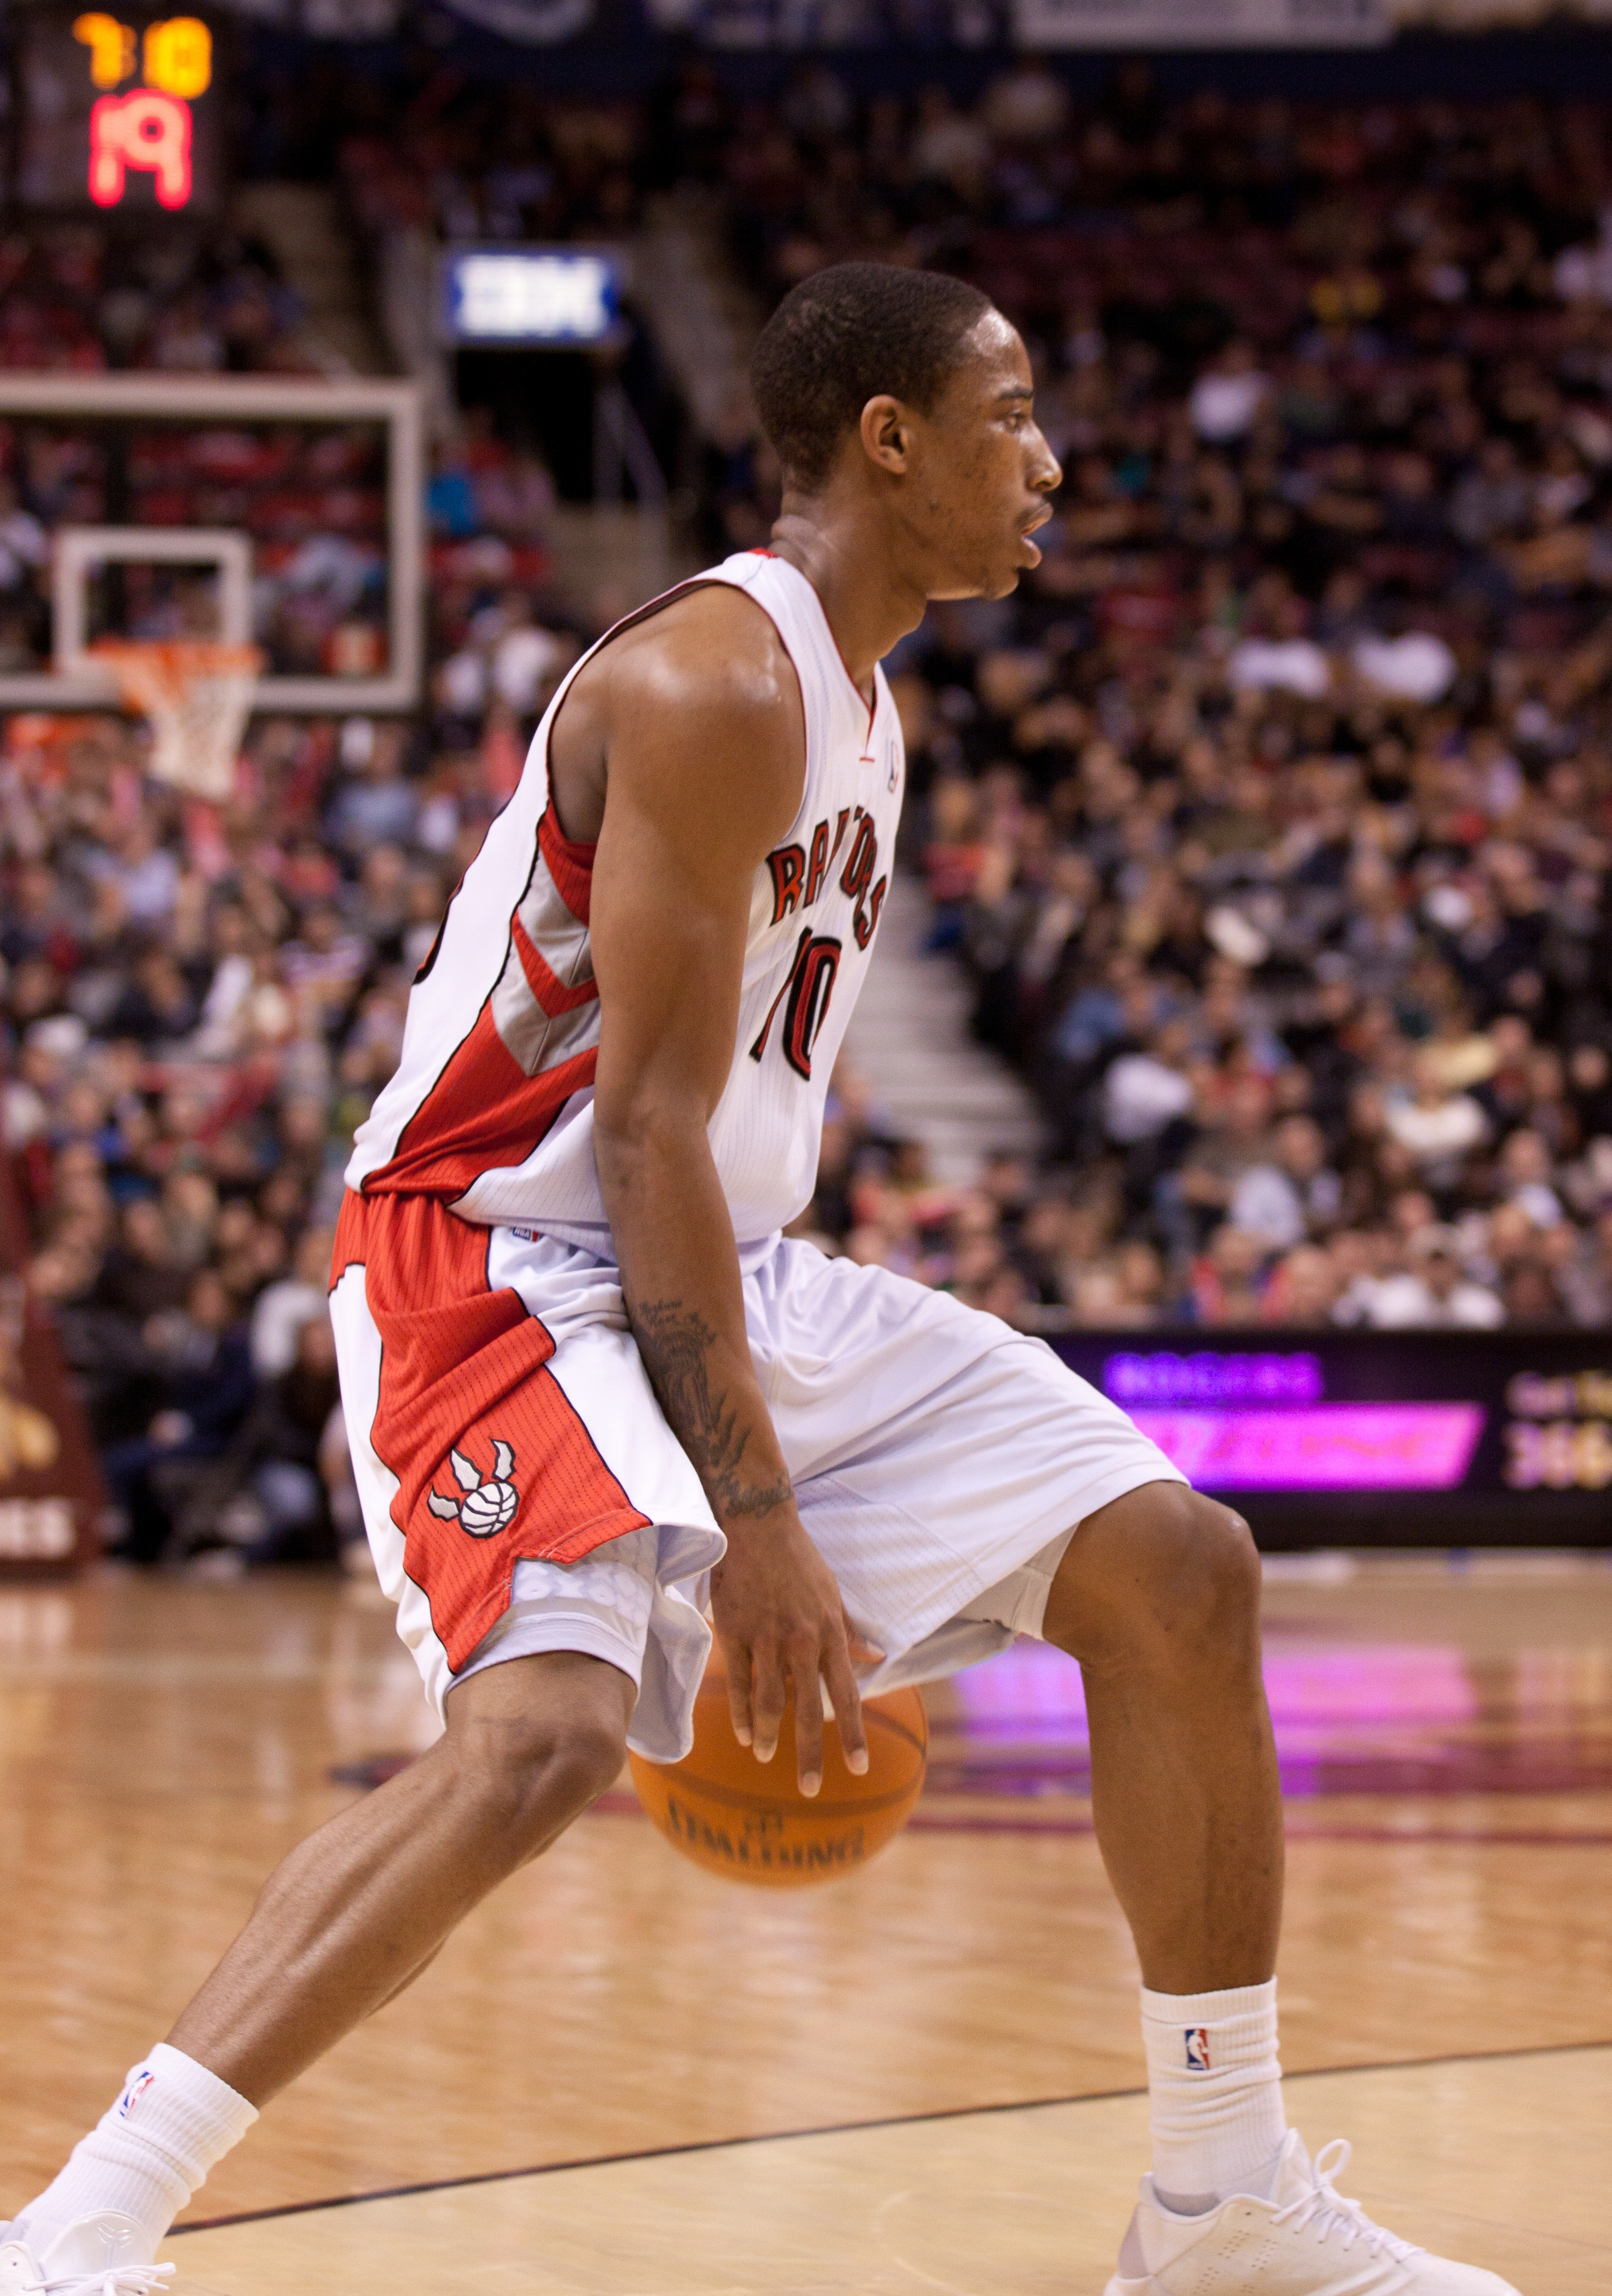 Toronto Raptors guard DeMar DeRozan scored a season-high 29 points in the loss to the San Antonio Spurs Wednesday night at the Air Canada Centre (JP Dhanoa)